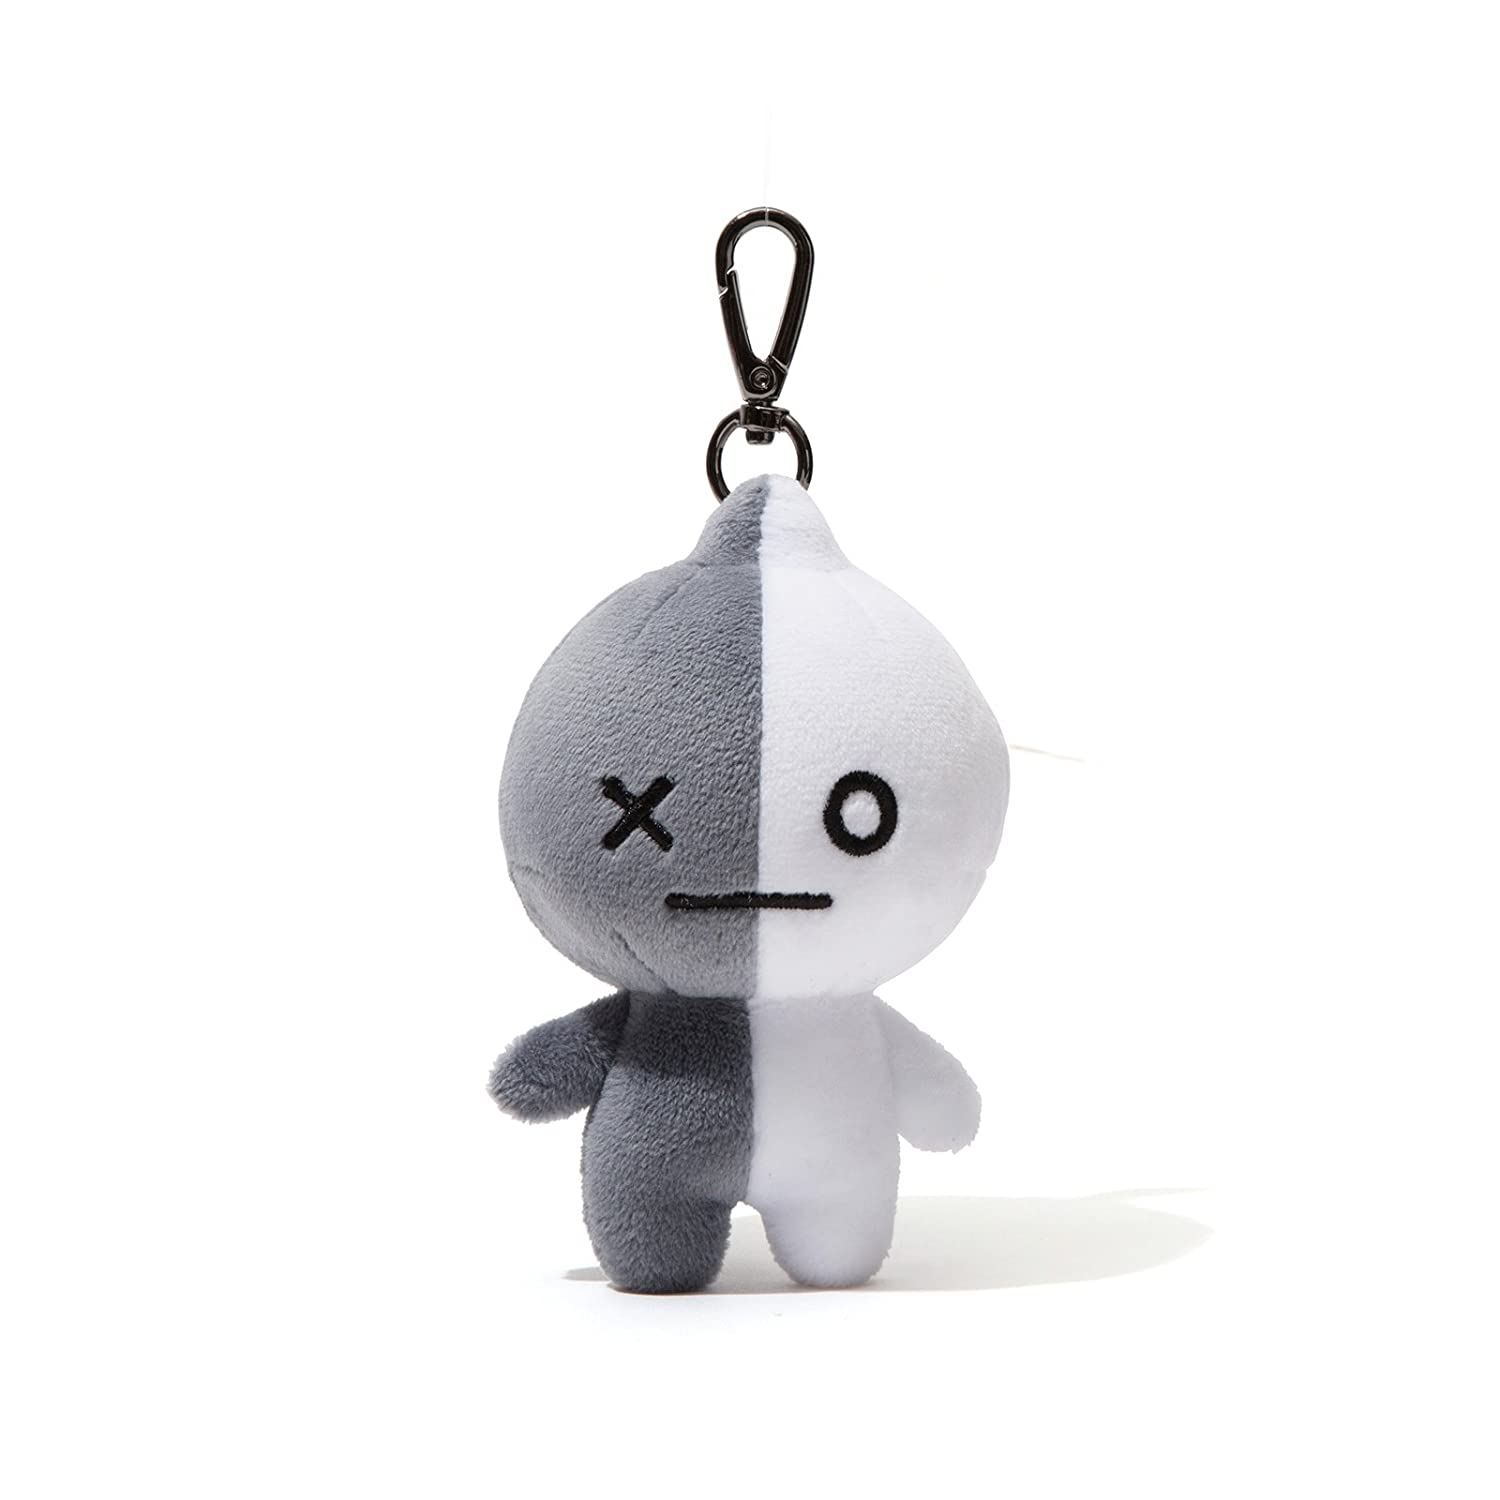 BT21 Cooky Pluch Keyring One Size Pink Line Friends